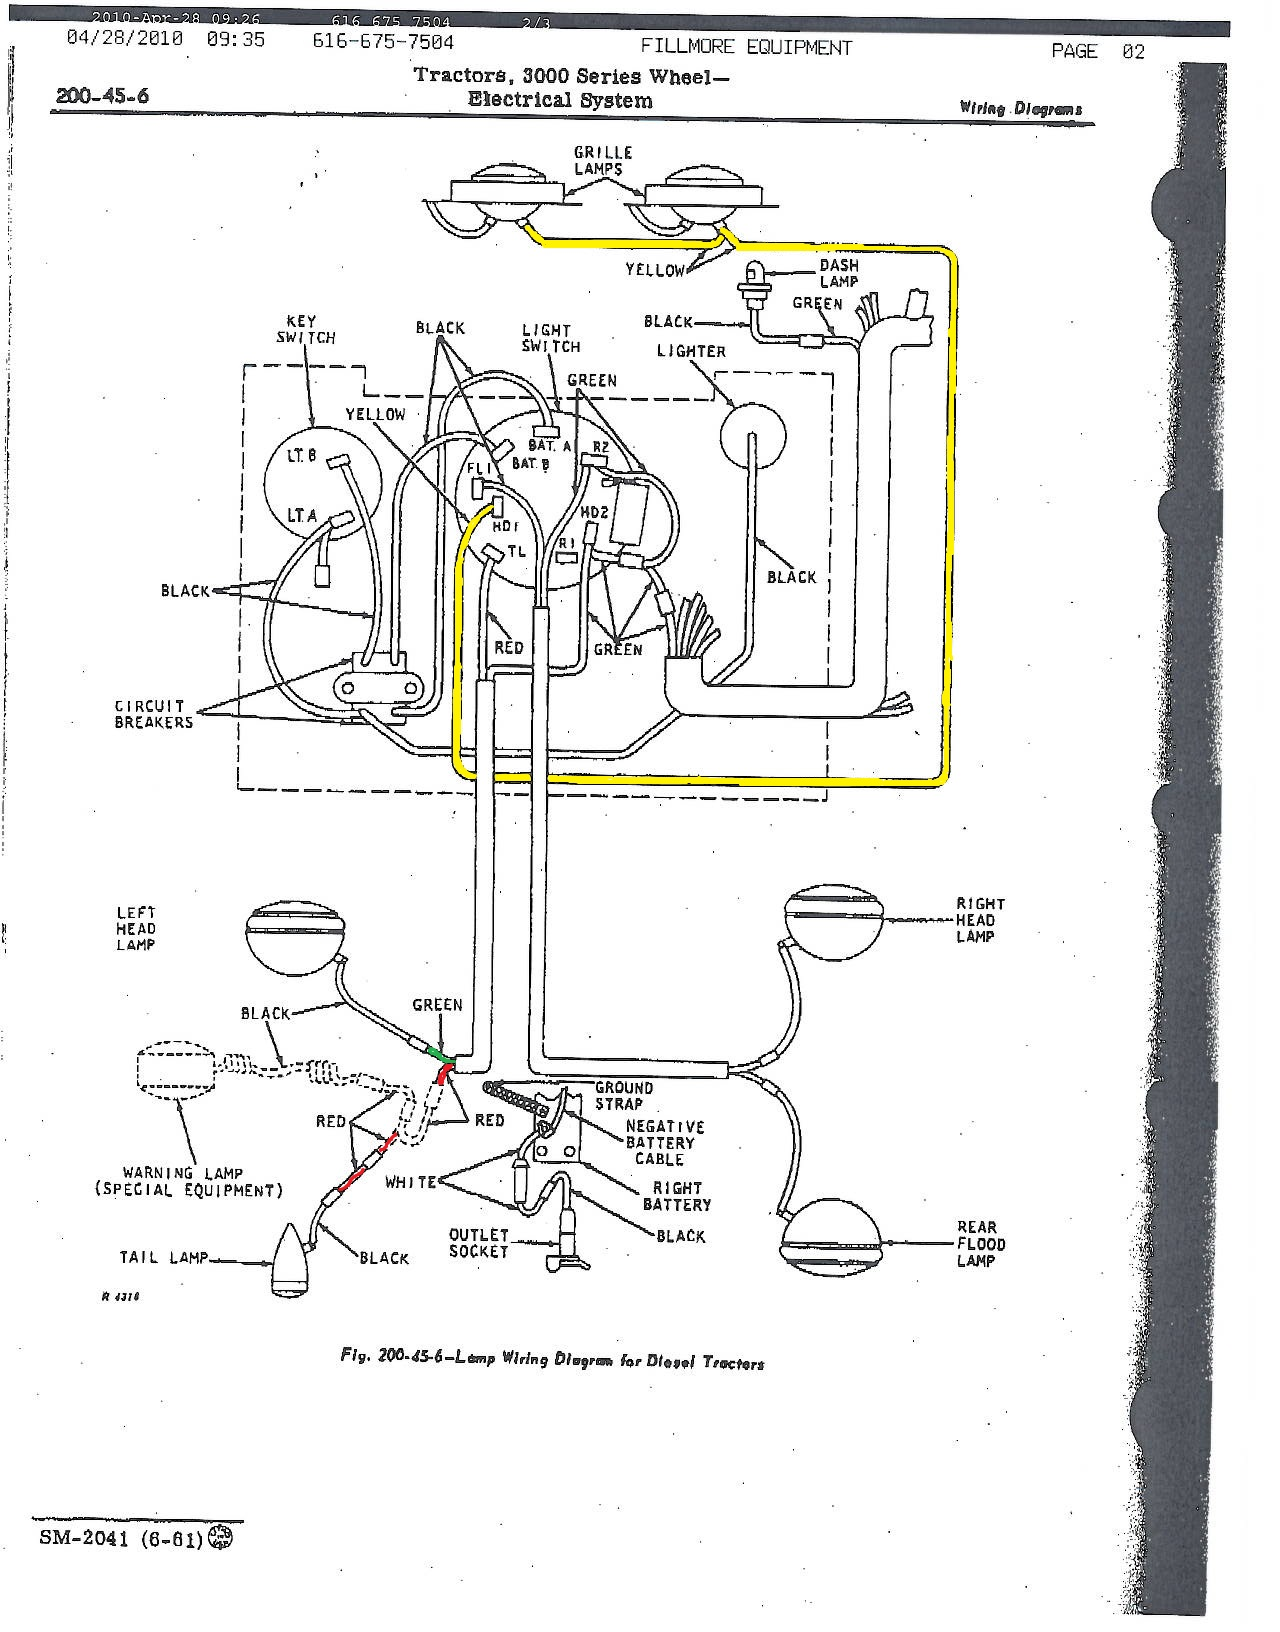 Wiring Diagram Farmall 826 Farmall 400 Wiring Diagram